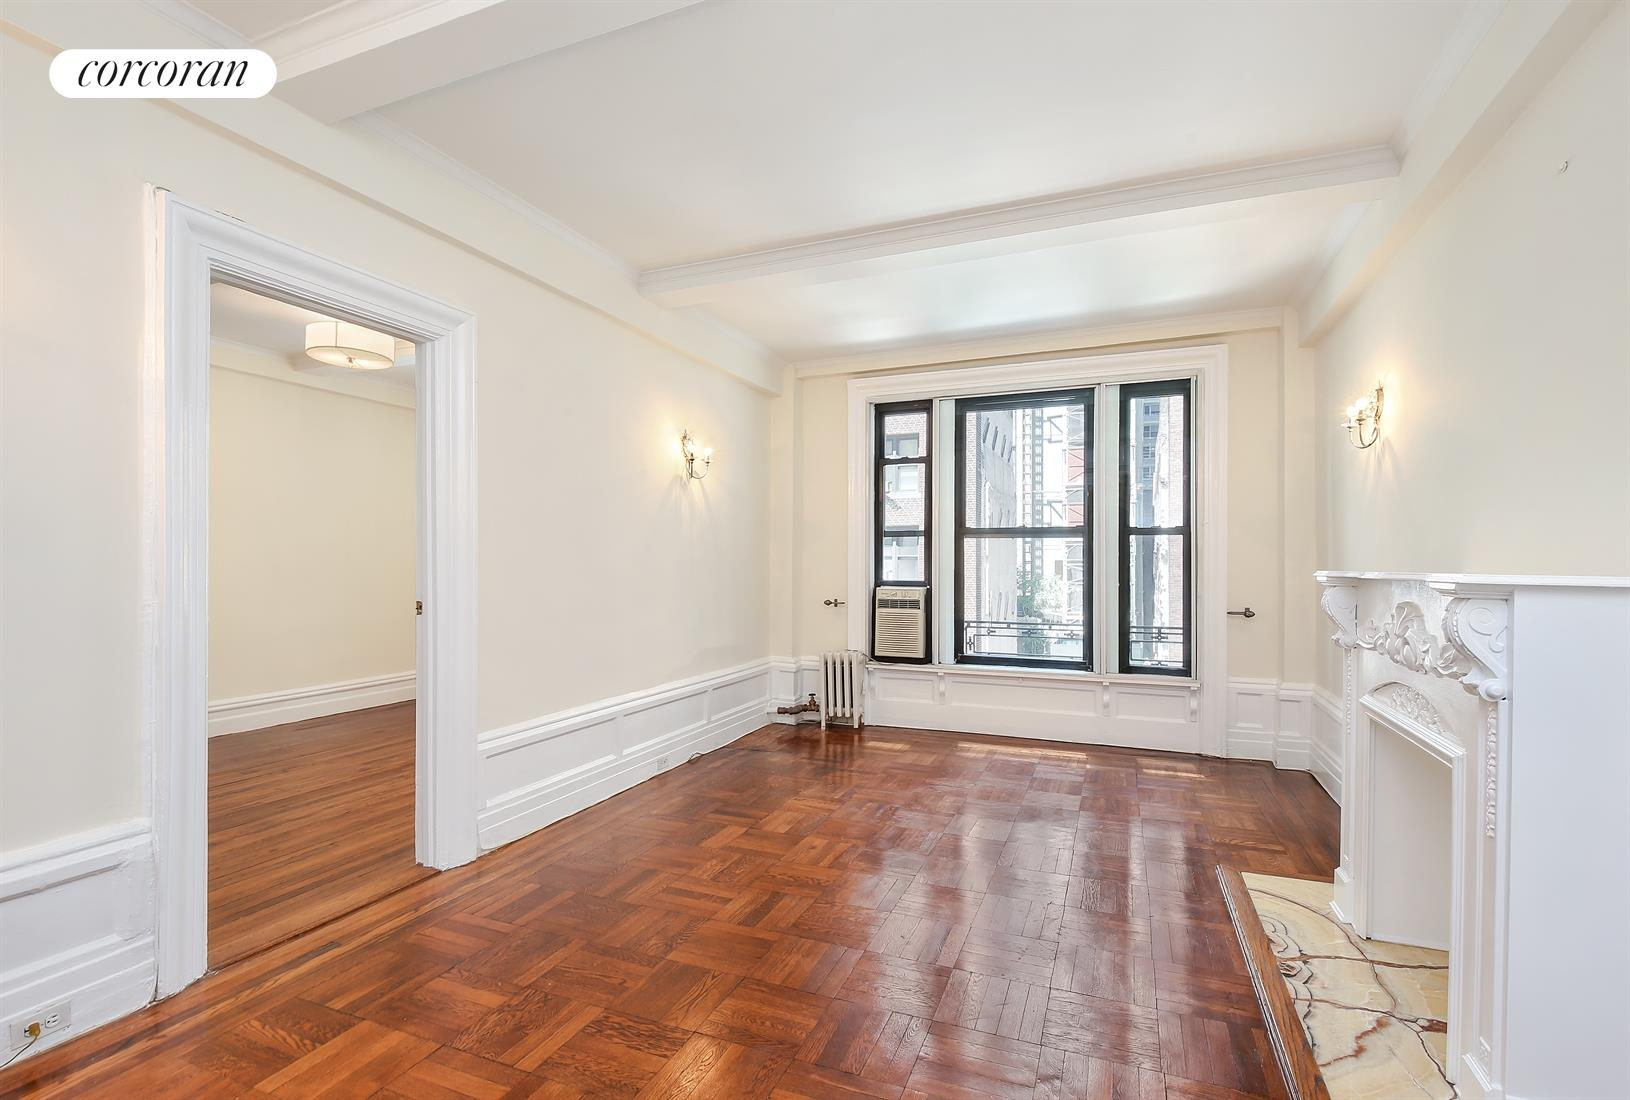 146 East 49th Street, 4B, Living Room